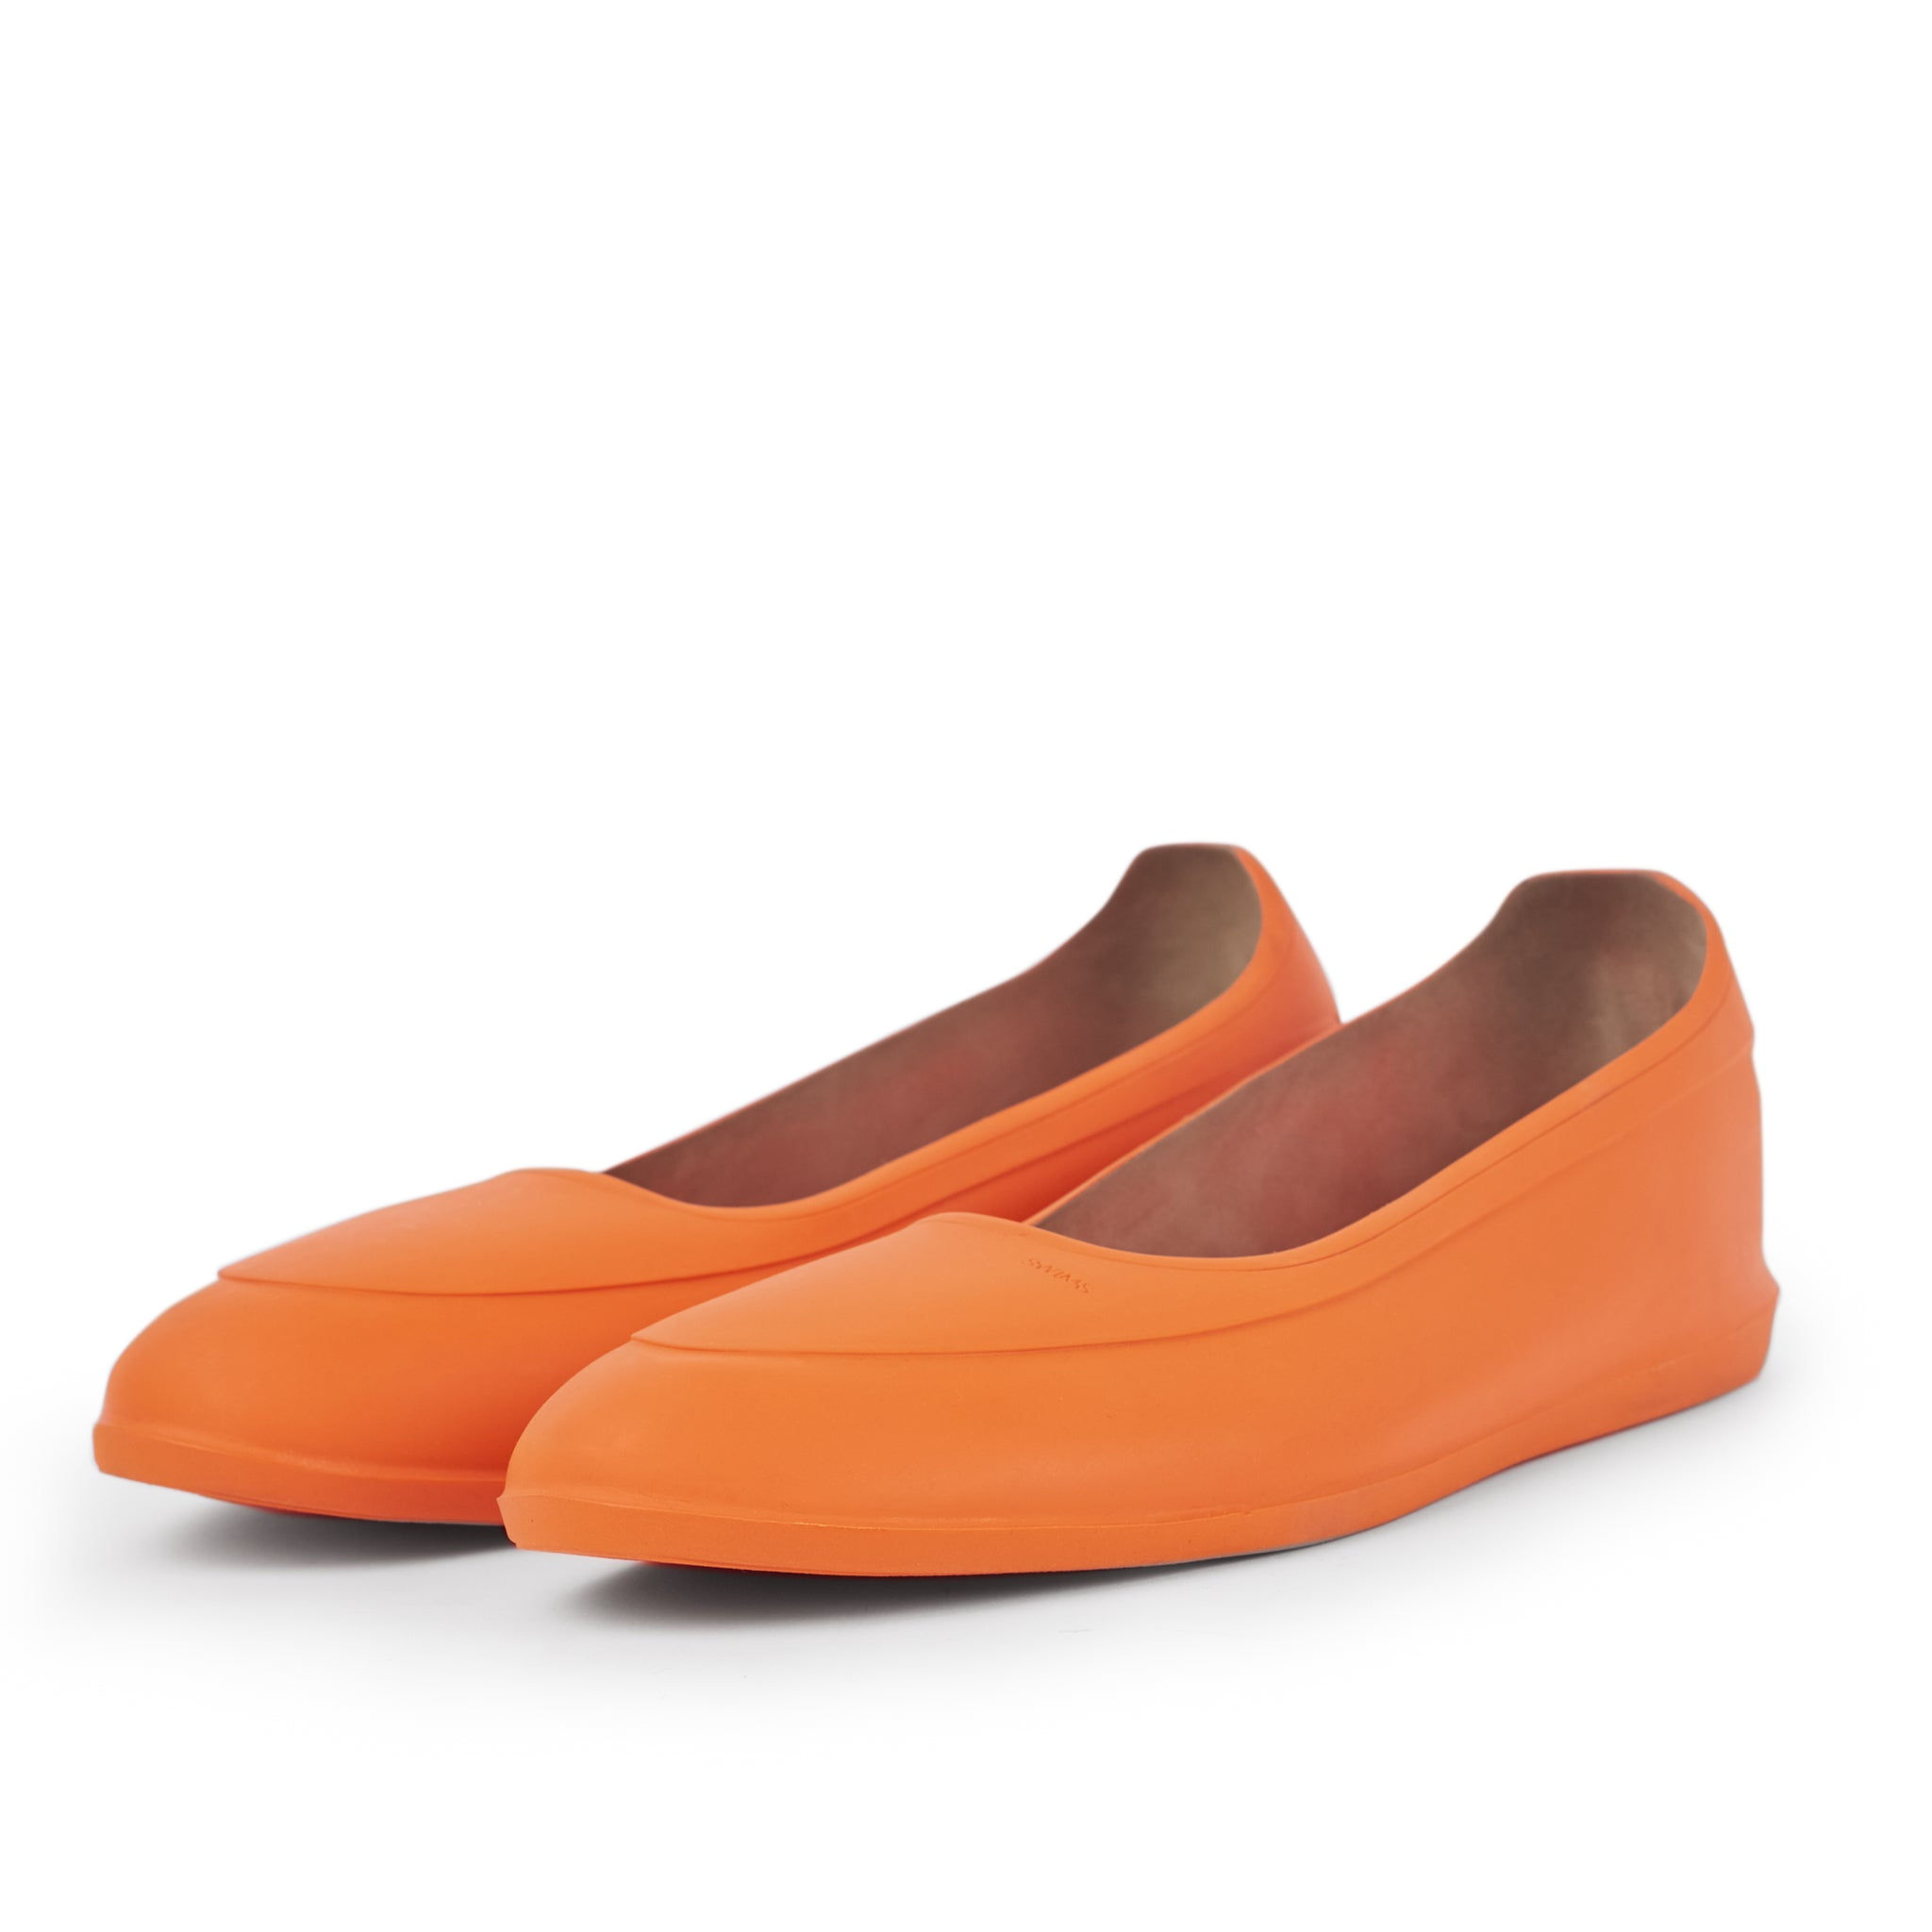 Cubrezapatos lluvia Naranja by Swims